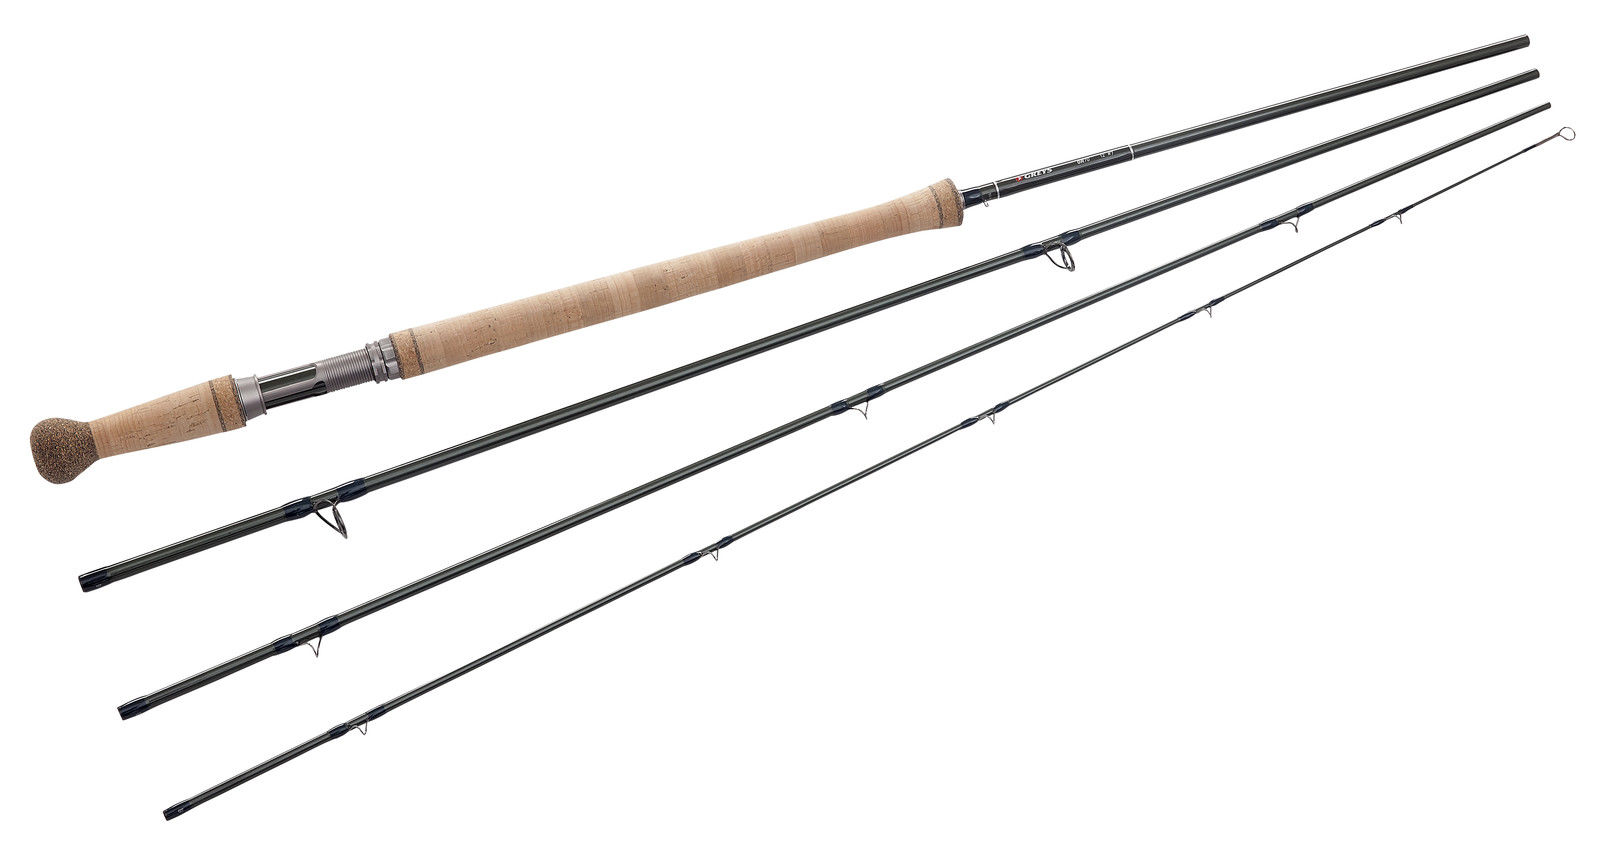 Fly tying materials like Fly Fishing Rod